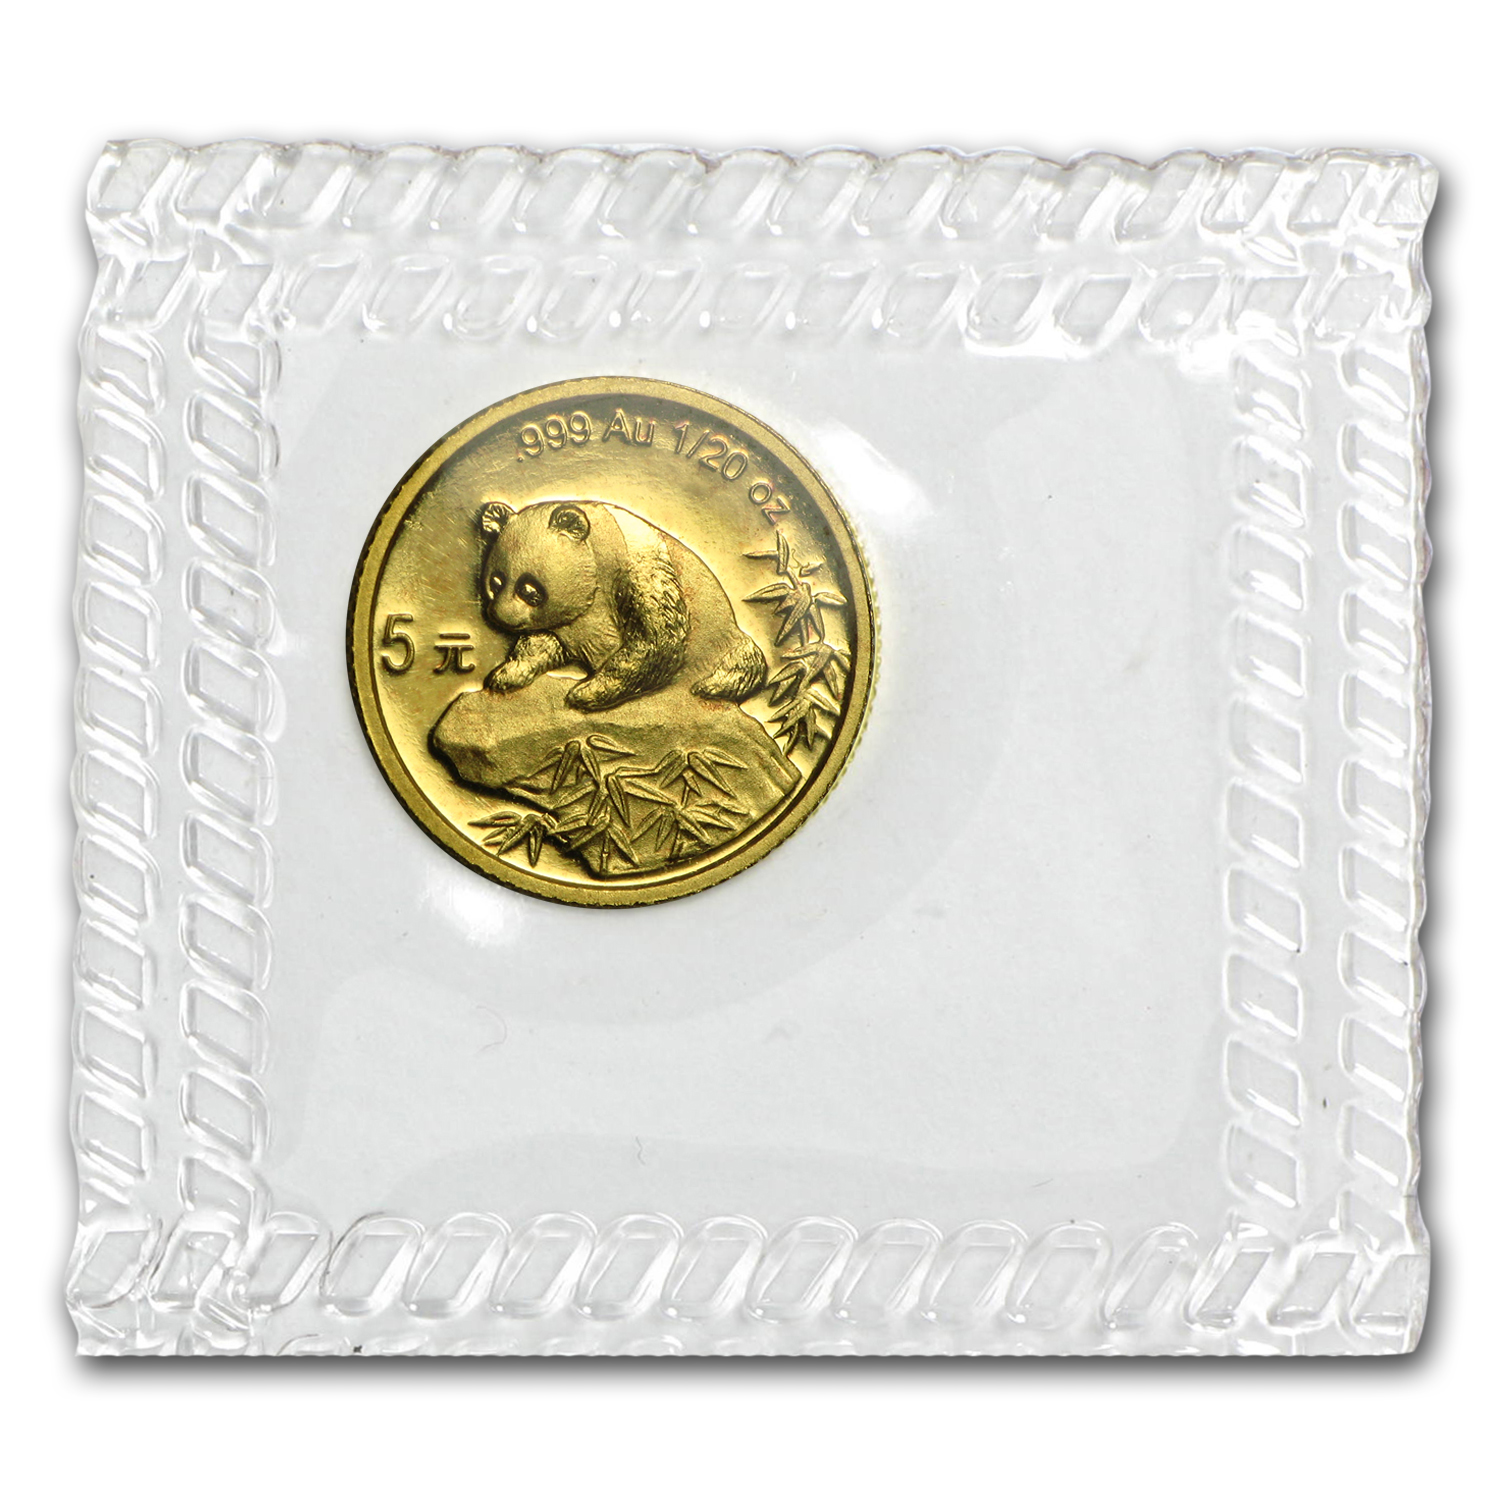 1999 China 1/20 oz Gold Panda Small Date BU (Sealed)